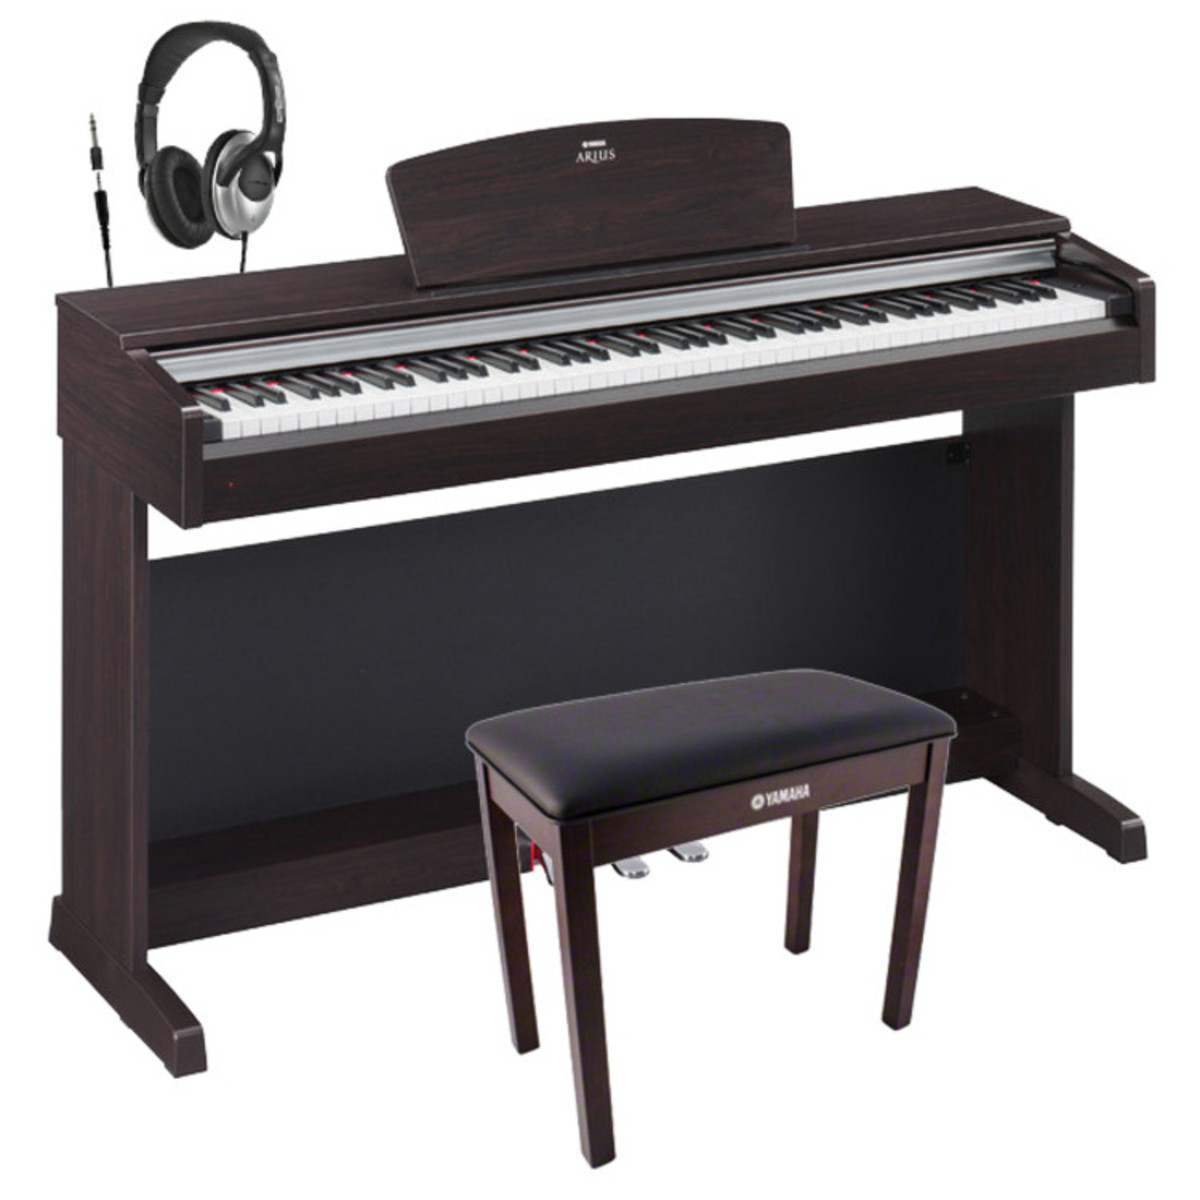 Yamaha Arius Ydp 141 : disc yamaha arius ydp 141 digital piano rw headphones and bench at ~ Hamham.info Haus und Dekorationen